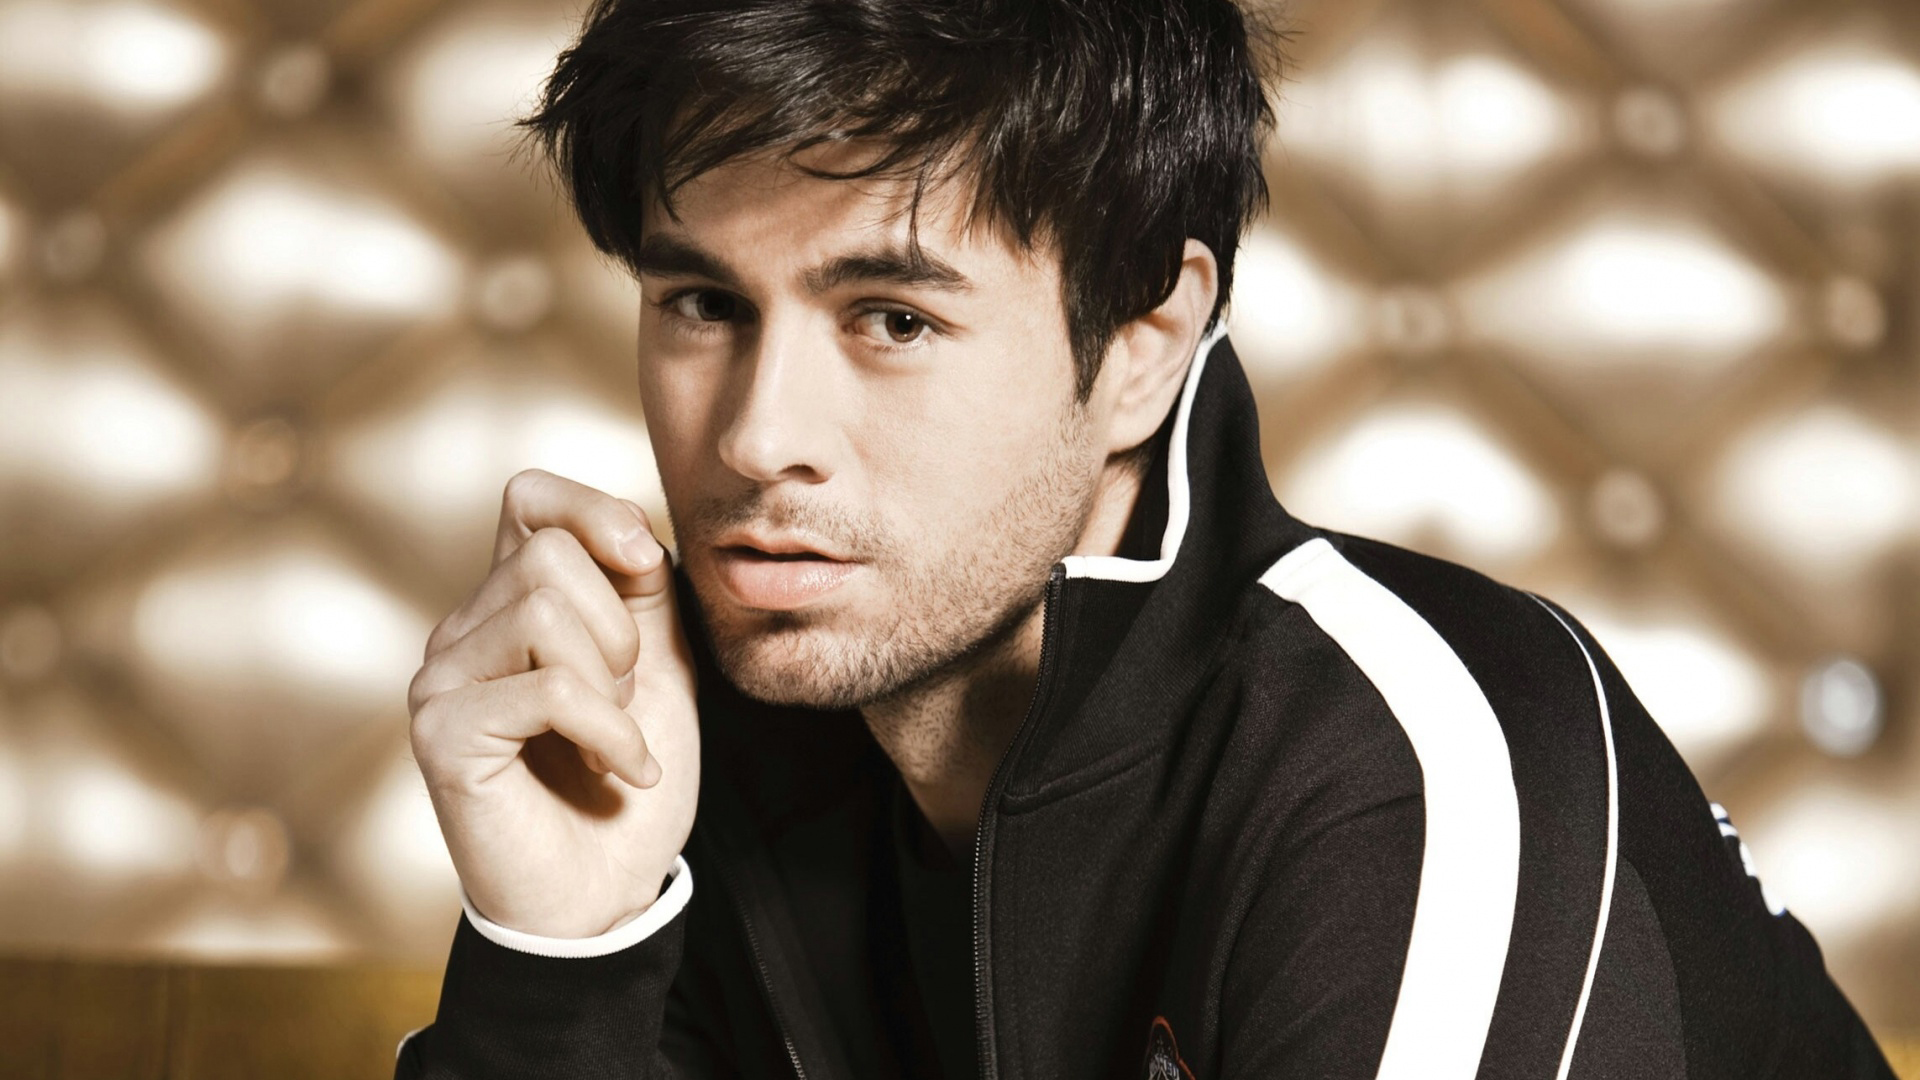 Enrique Iglesias Hd Background